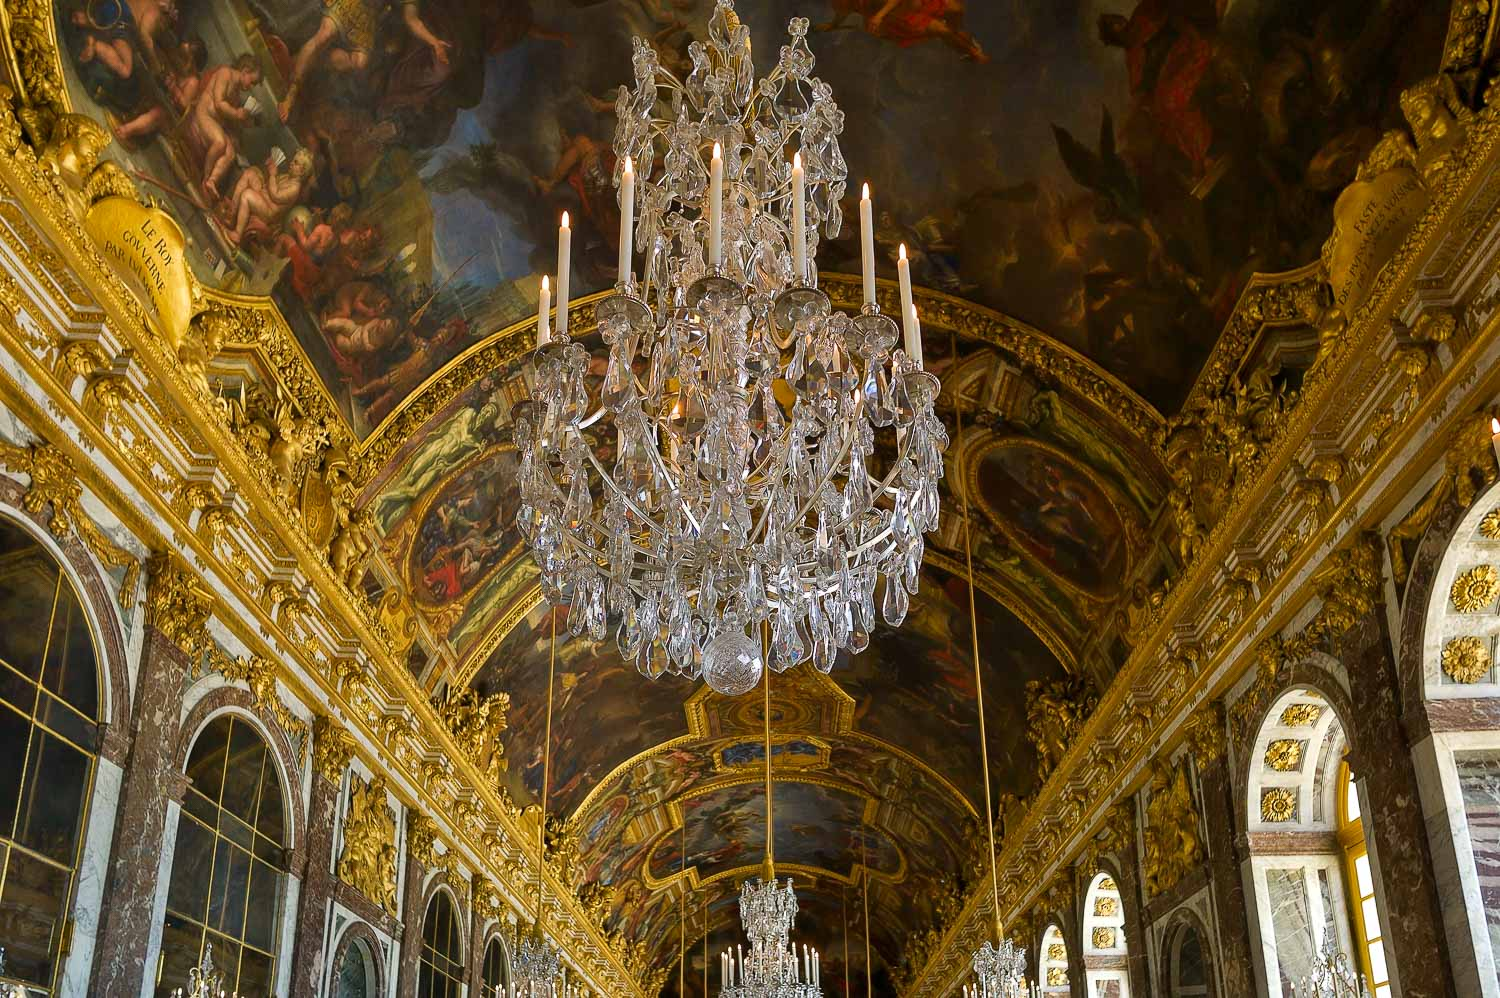 A magnificent chandelier against a famously ornate series of ceiling murals at the Palace of Versailles, France